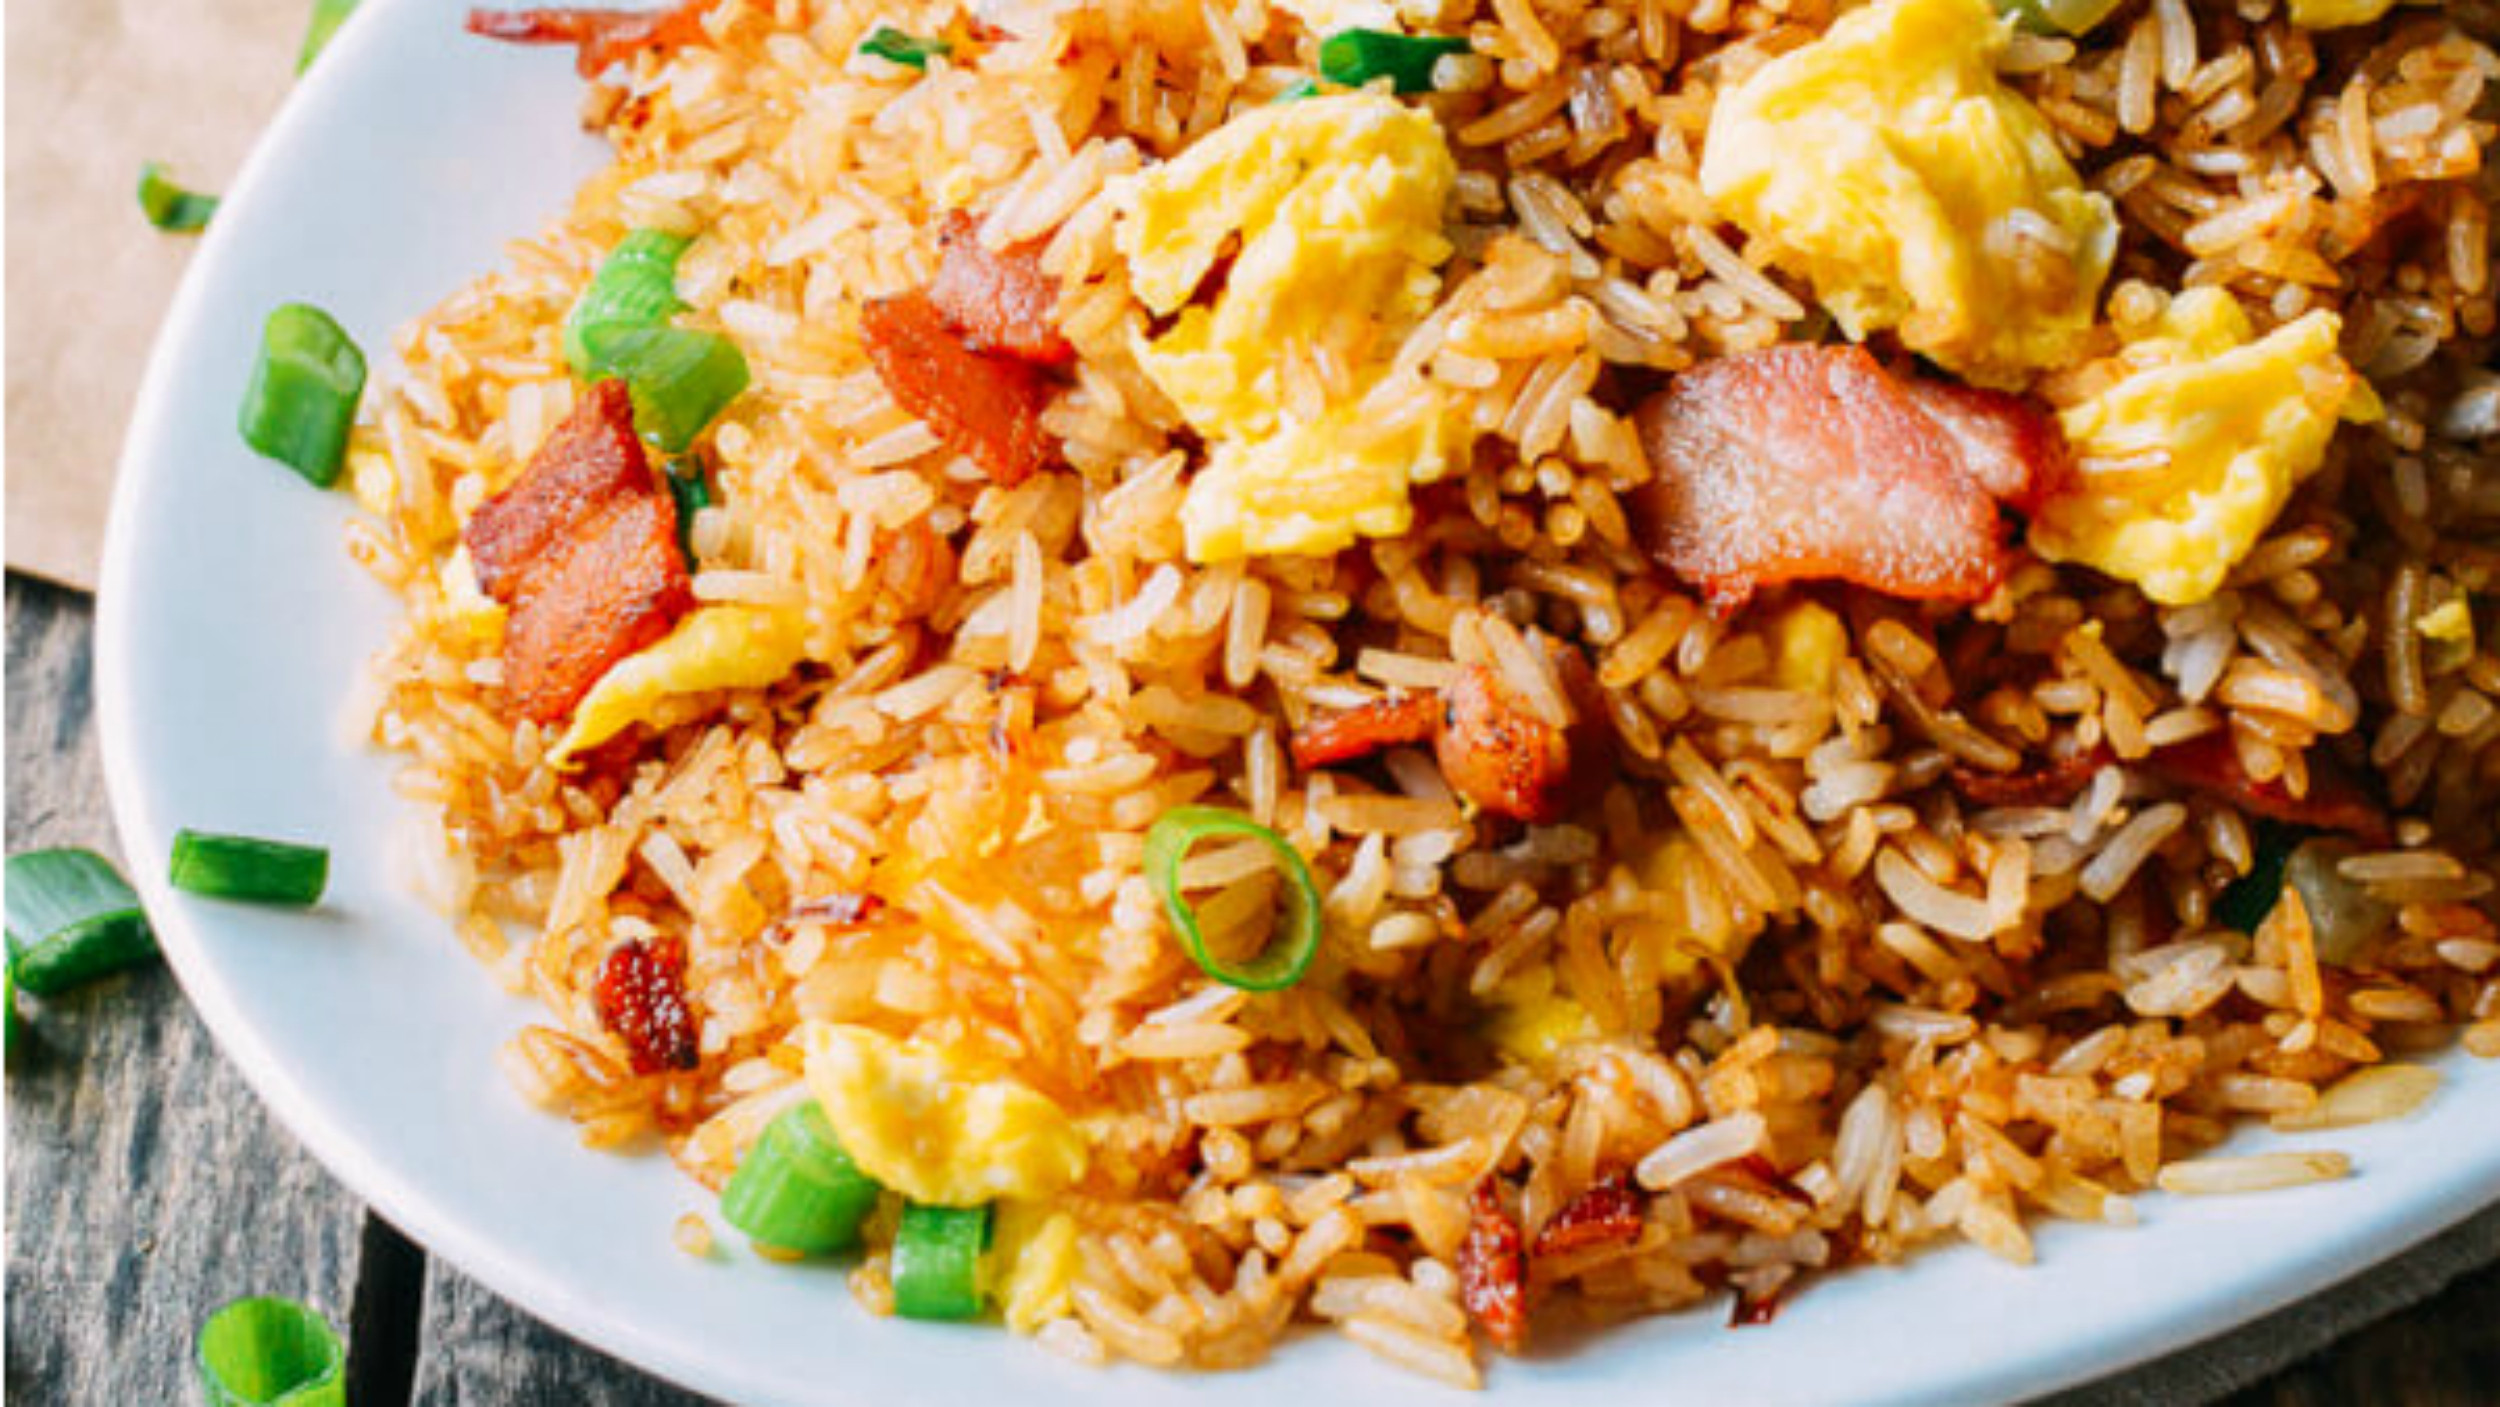 Bacon Fried Rice  Takeout recipes at home Make bacon and egg fried rice